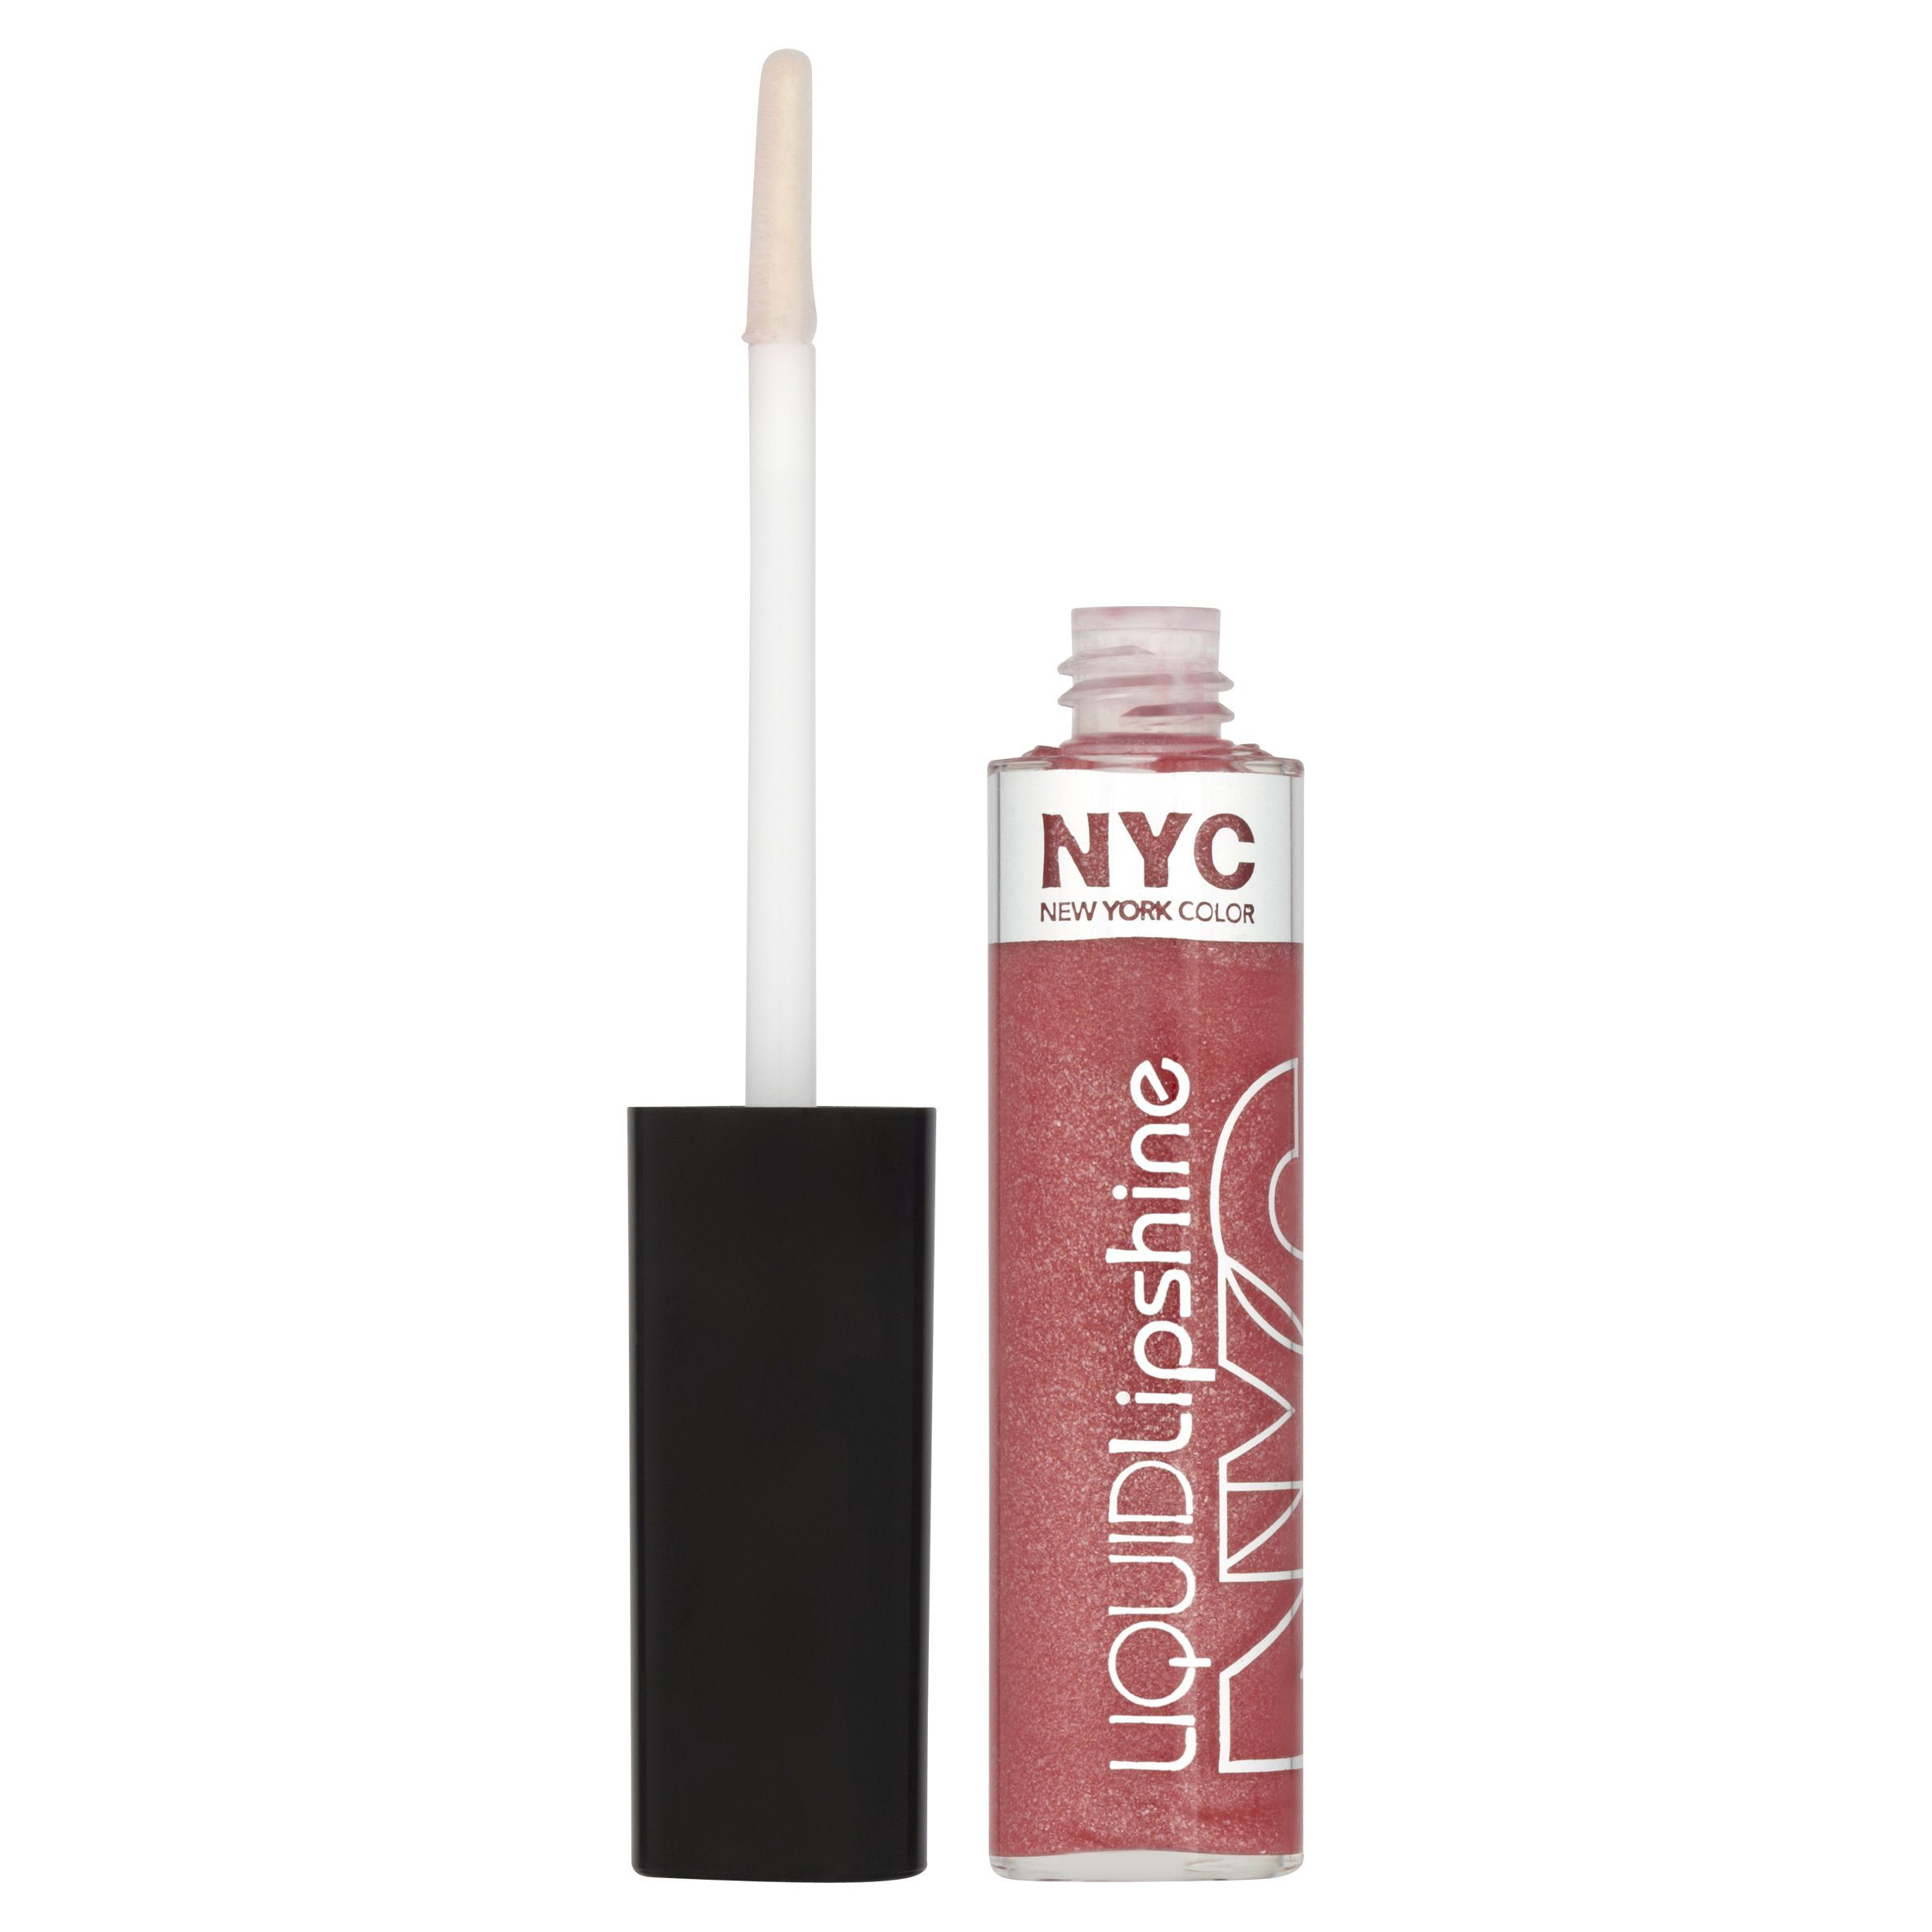 NYC New York Color Liquid Lipshine, Bowery Blush